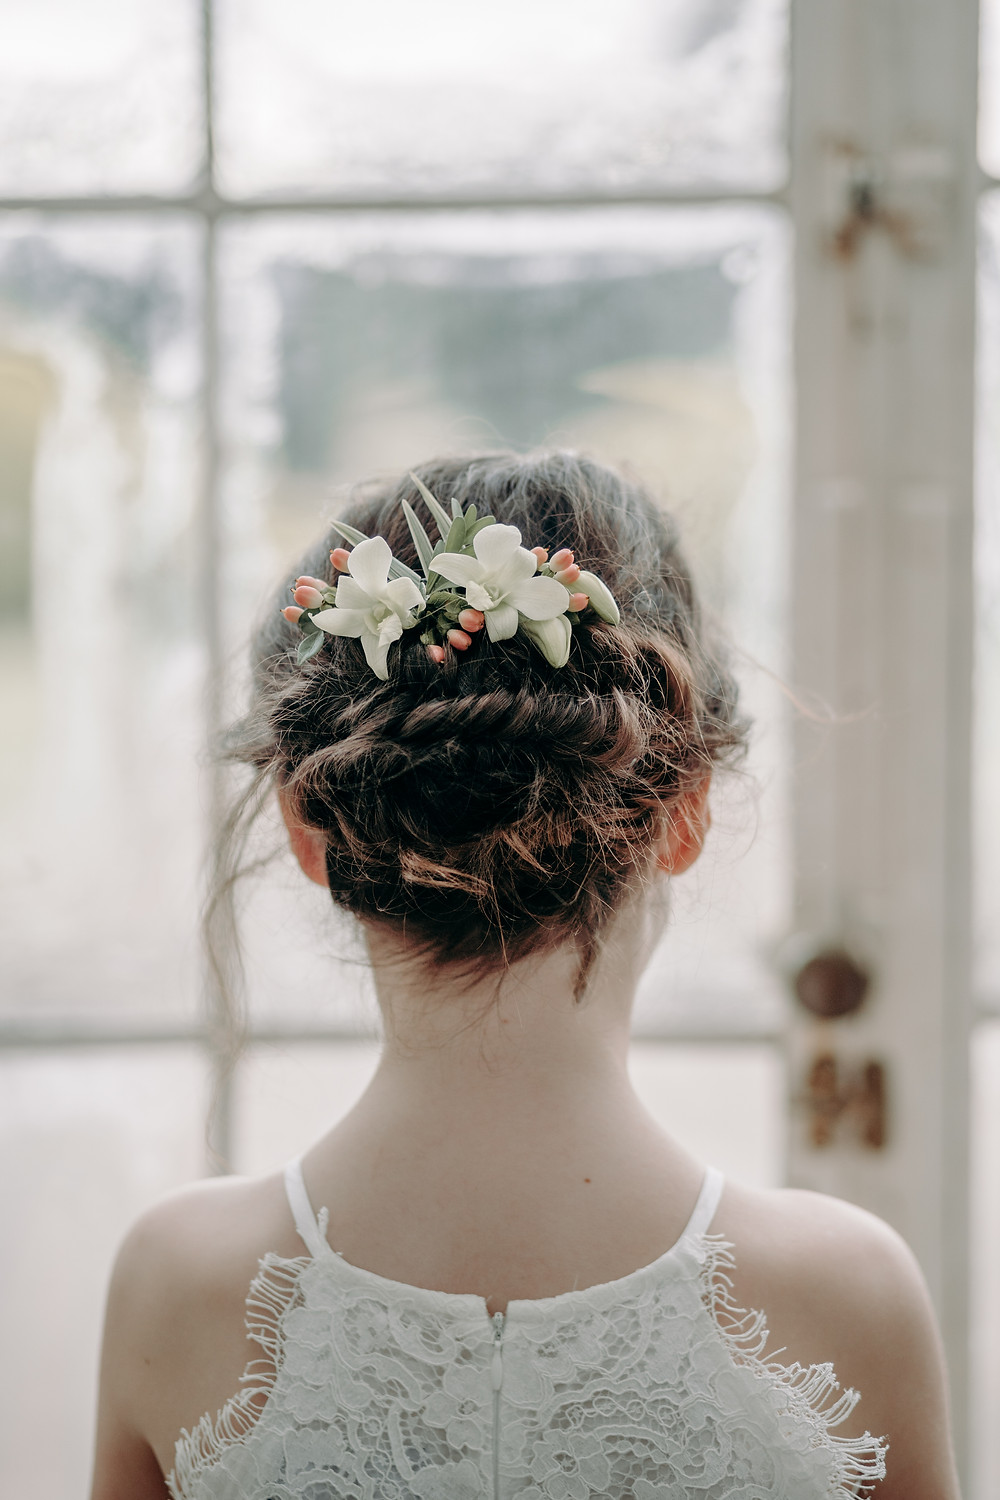 Fishtail braid, textured bridal flower girl hairstyl, Mazz Loxton Hair and Makeup Artistry, Sheffield